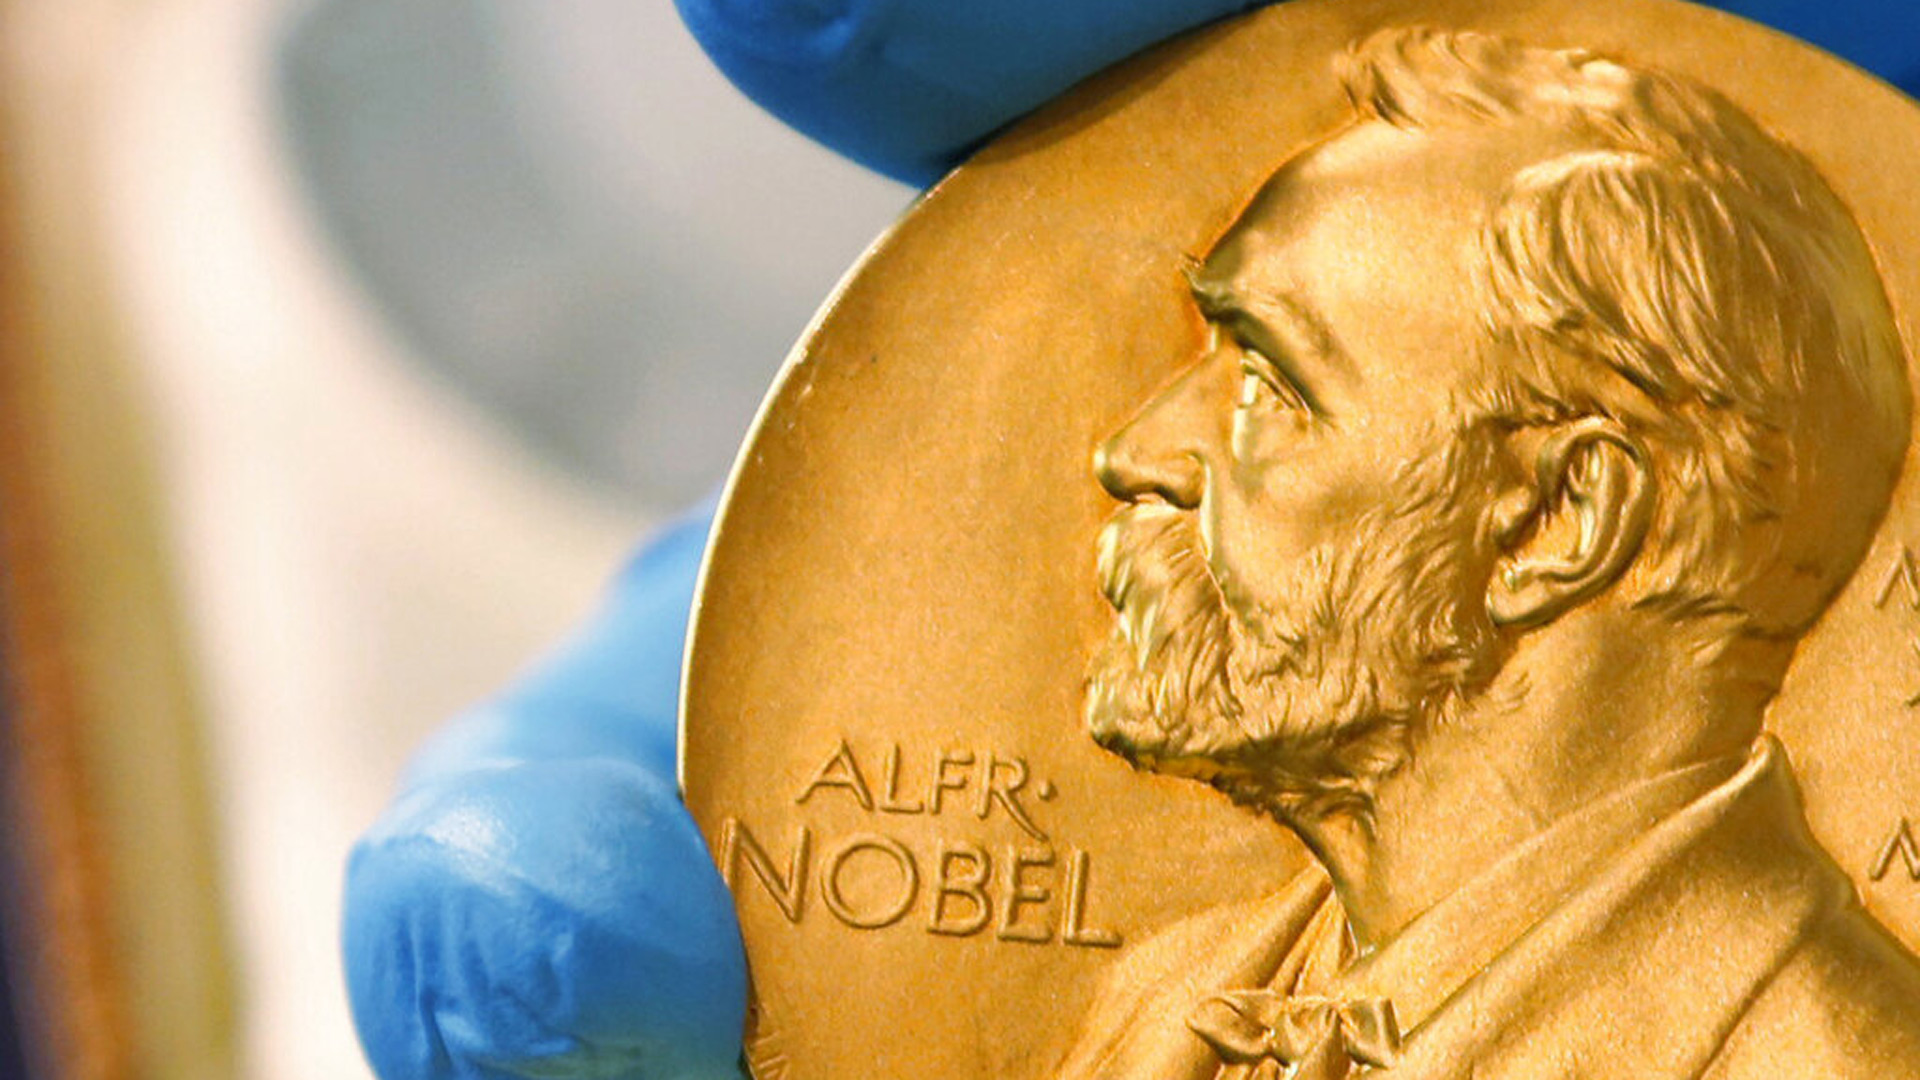 In this April 17, 2015 file photo, a national library employee shows a gold Nobel Prize medal in Bogota, Colombia. (AP Photo/Fernando Vergara, File)